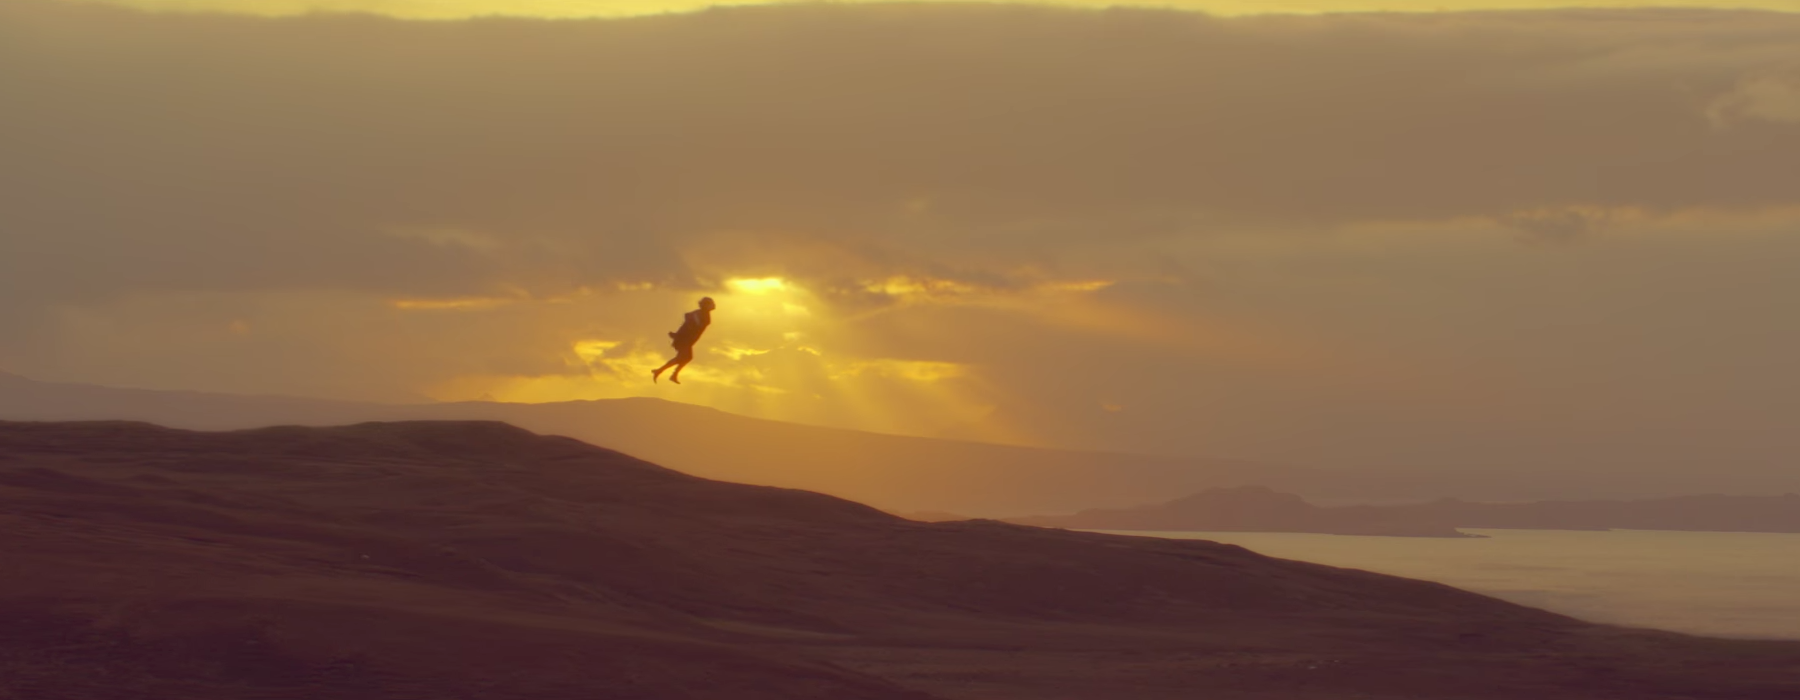 harry styles flying infront of sunset